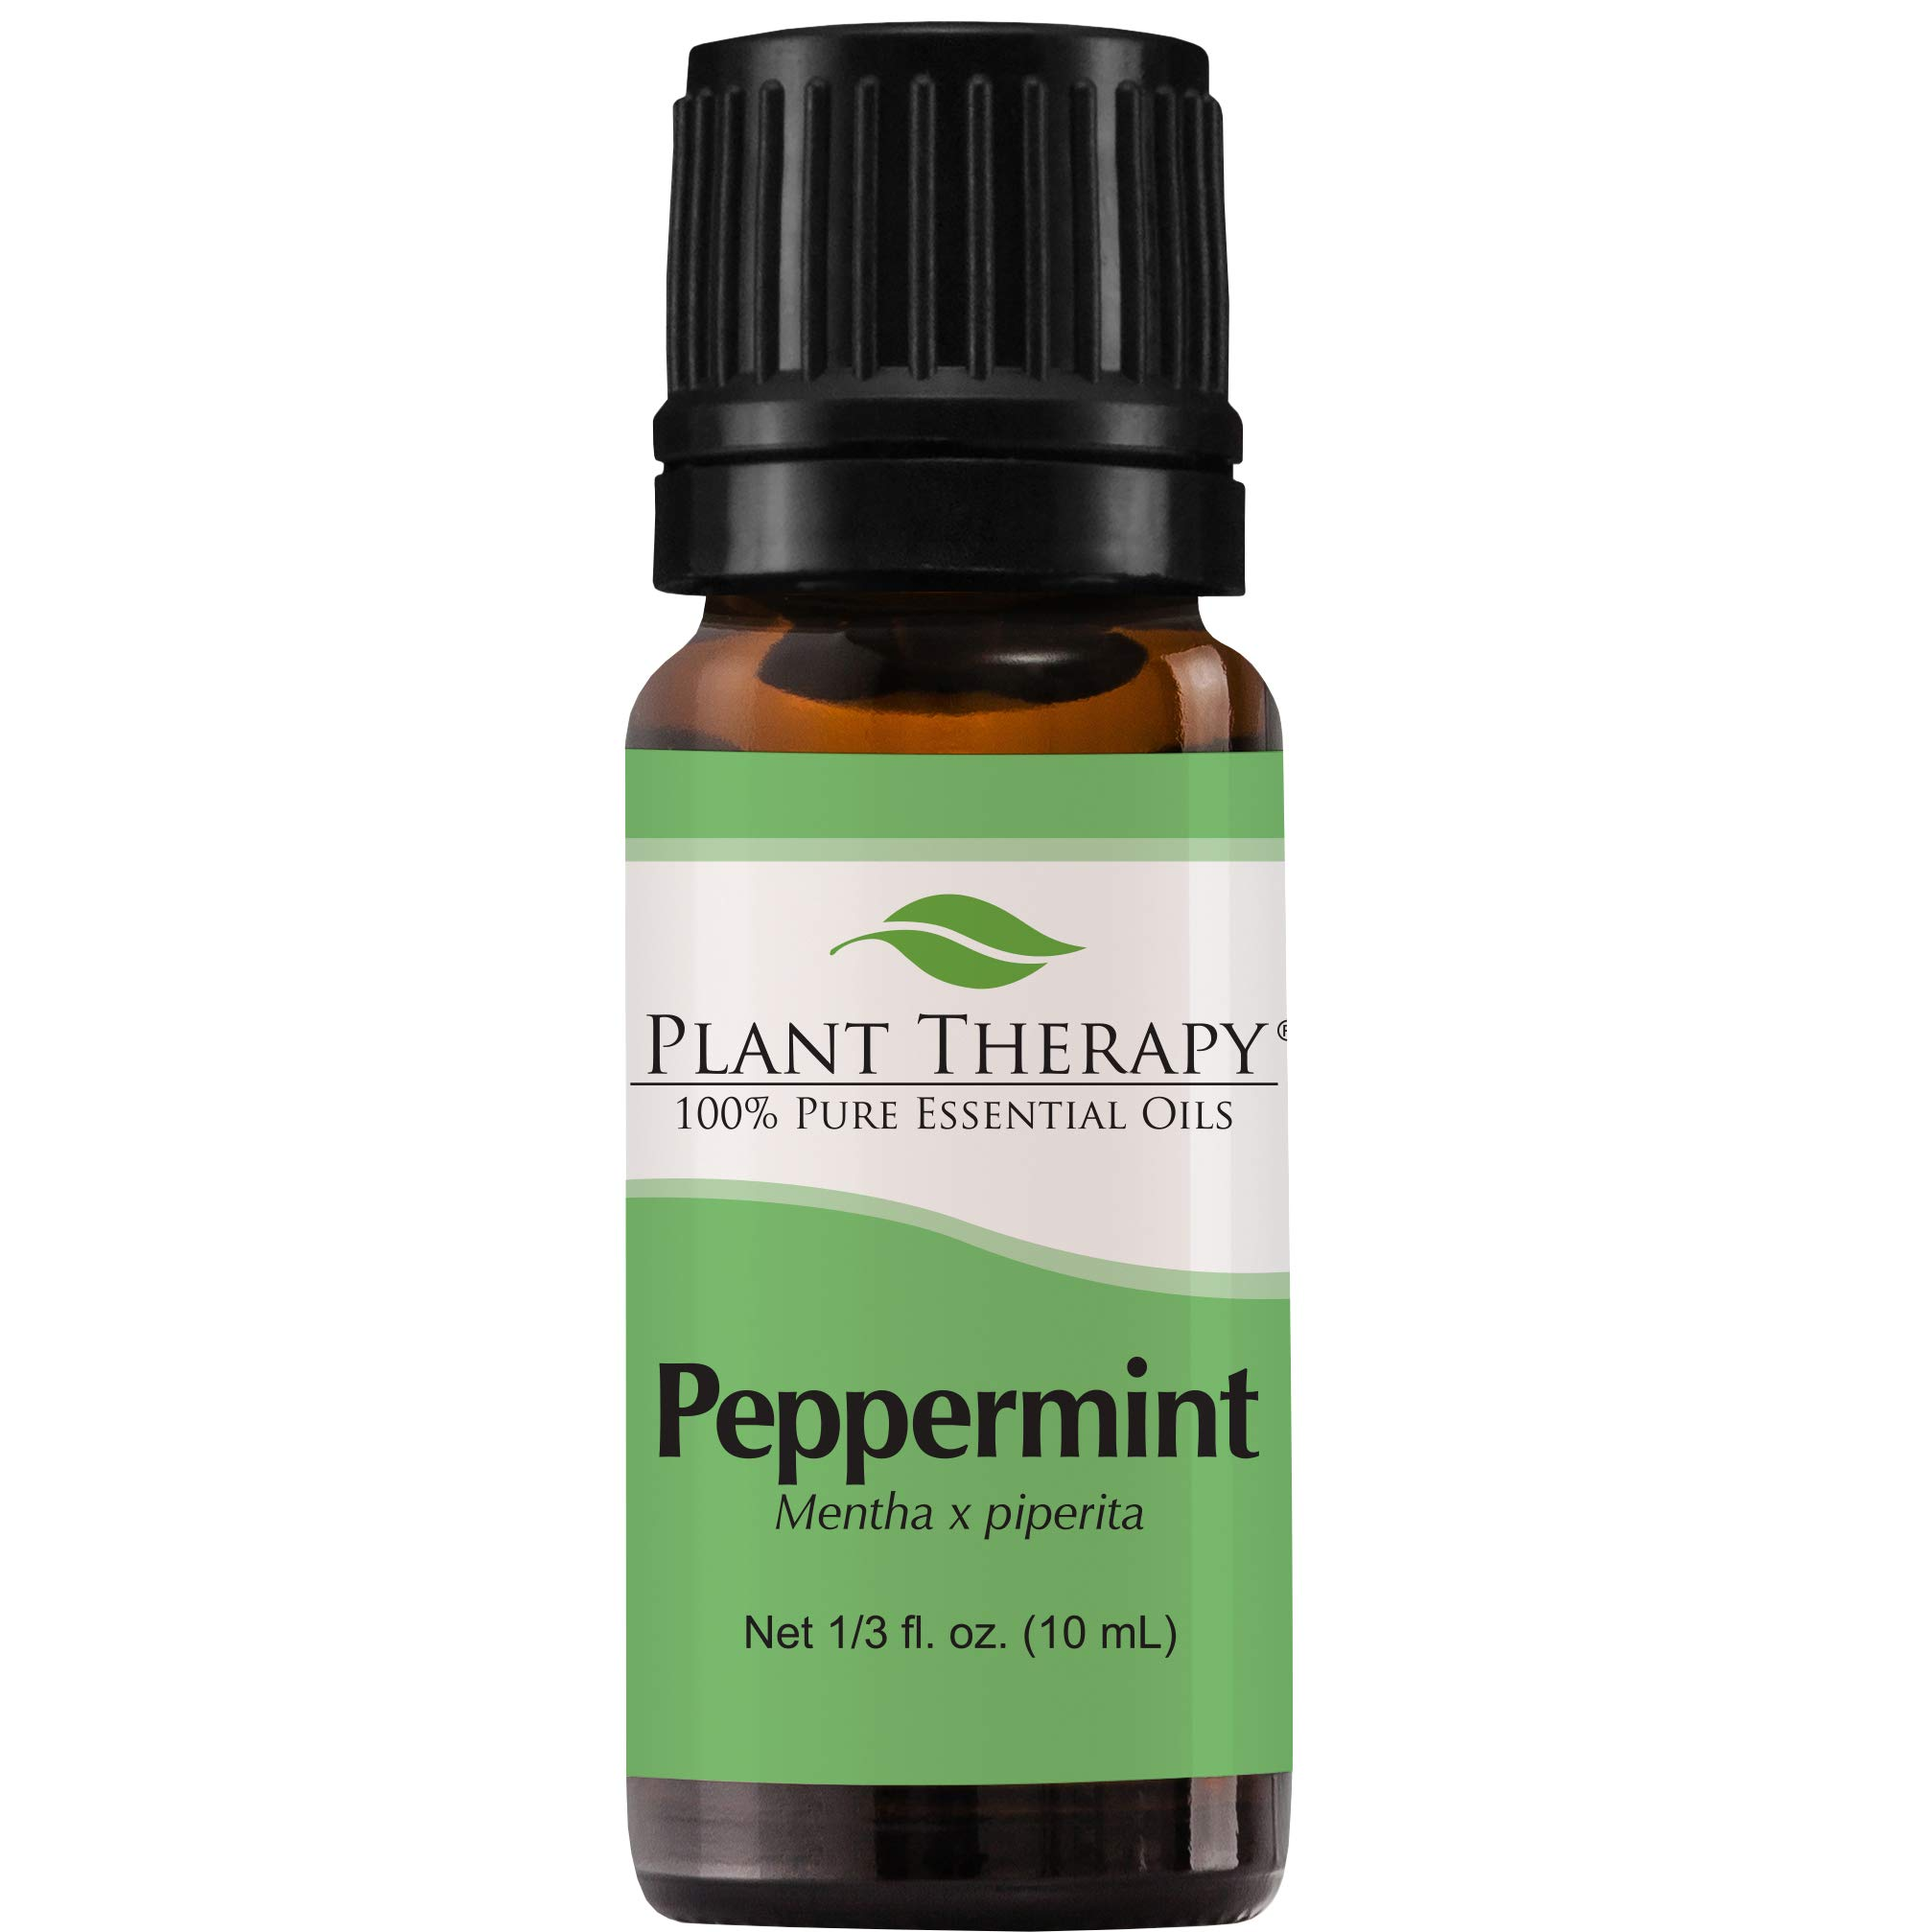 Plant Therapy Peppermint Essential Oil. 100% Pure, Undiluted, Therapeutic Grade. 10 ml (1/3 oz).